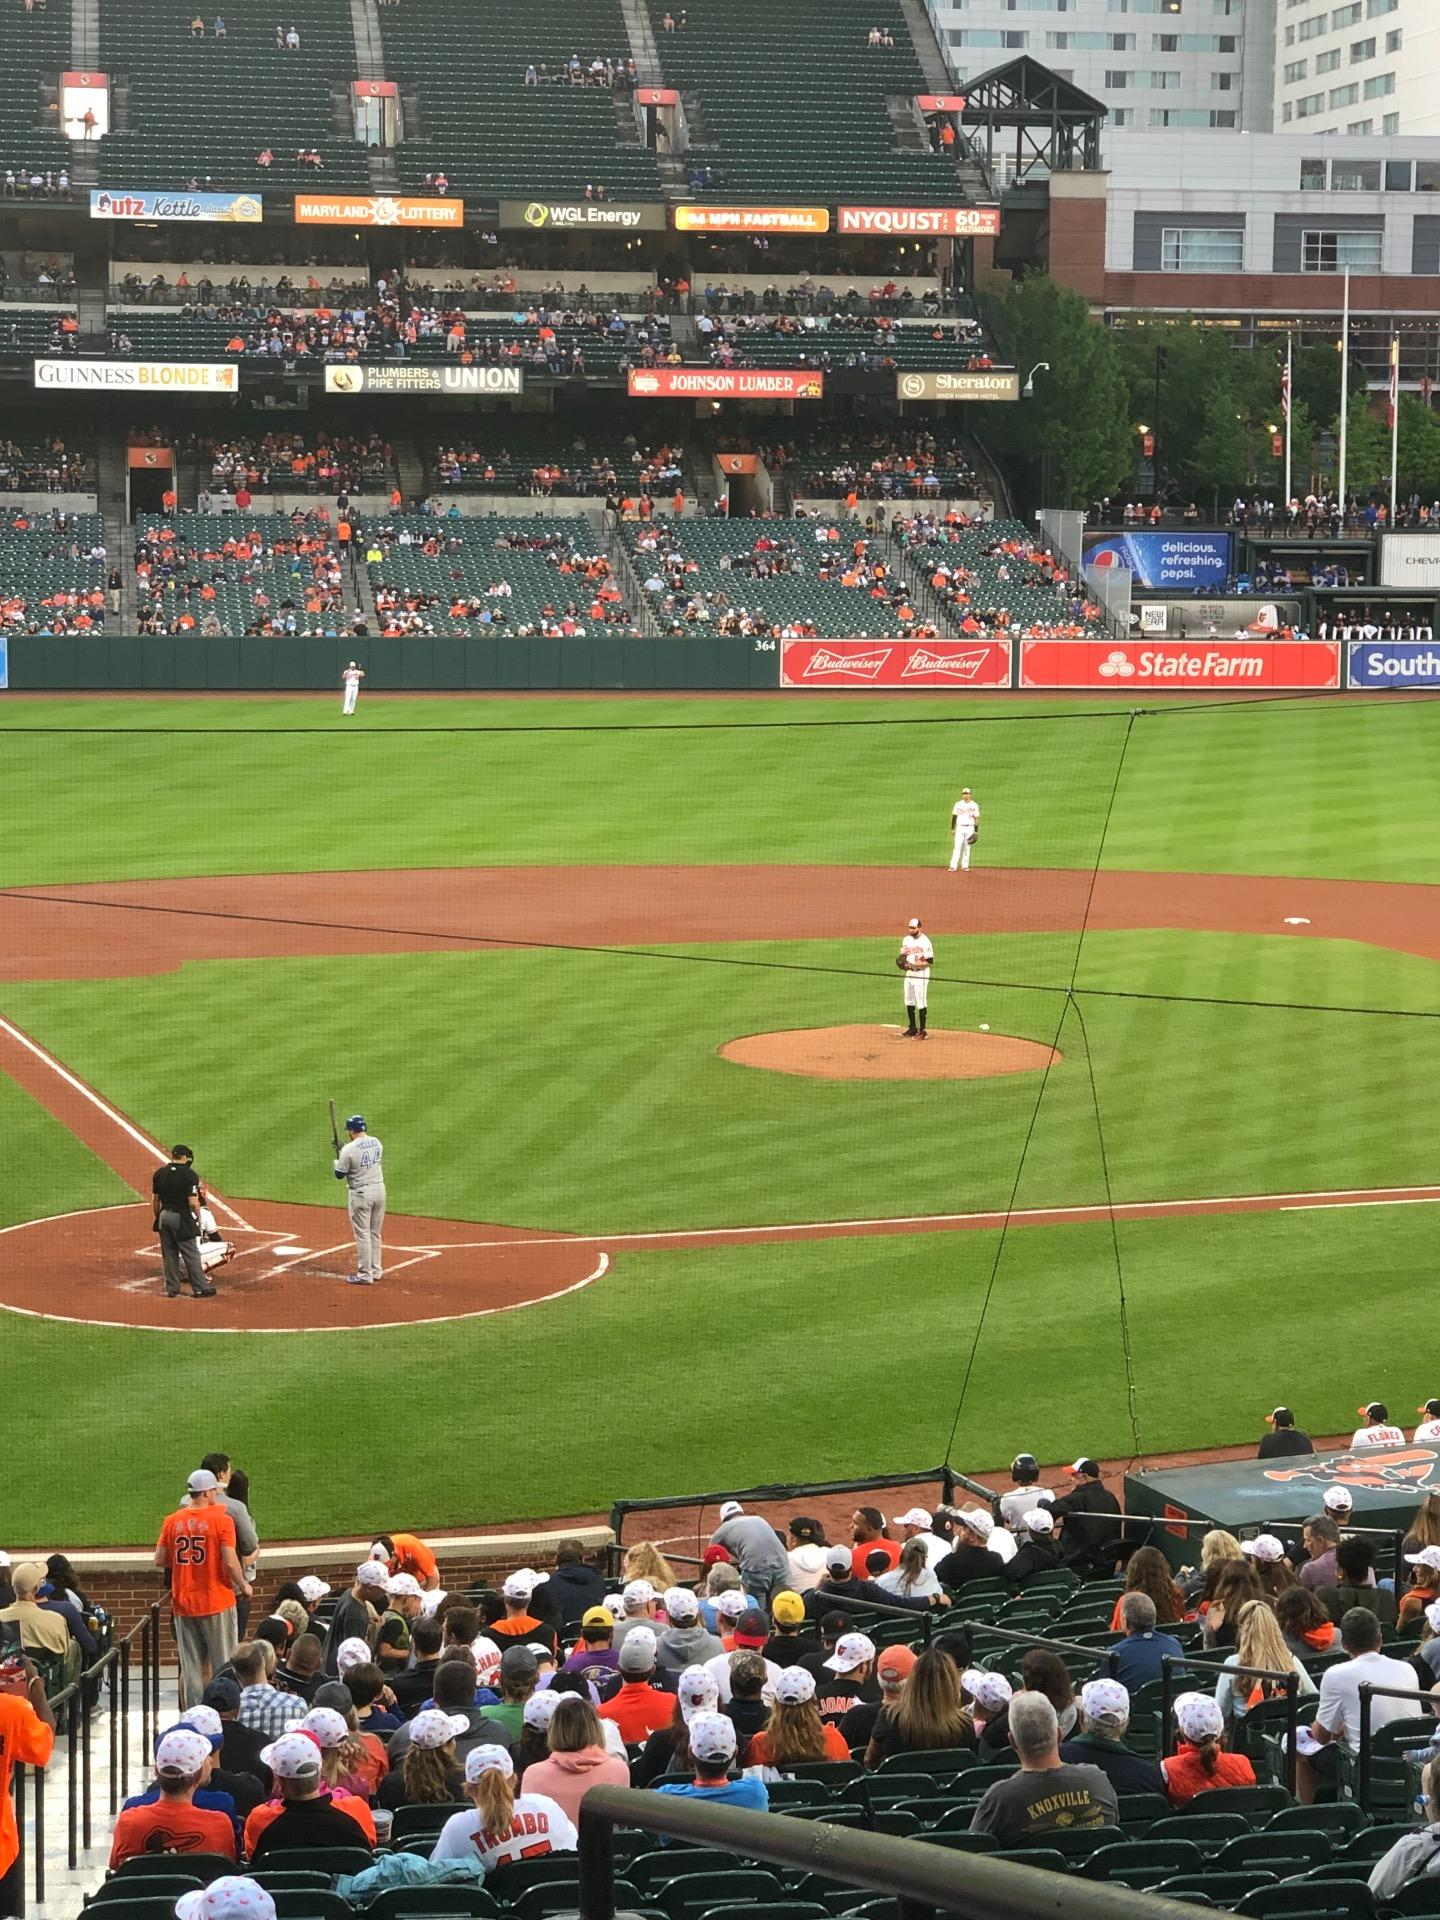 Oriole Park at Camden Yards Section 31 Row 7 Seat 2